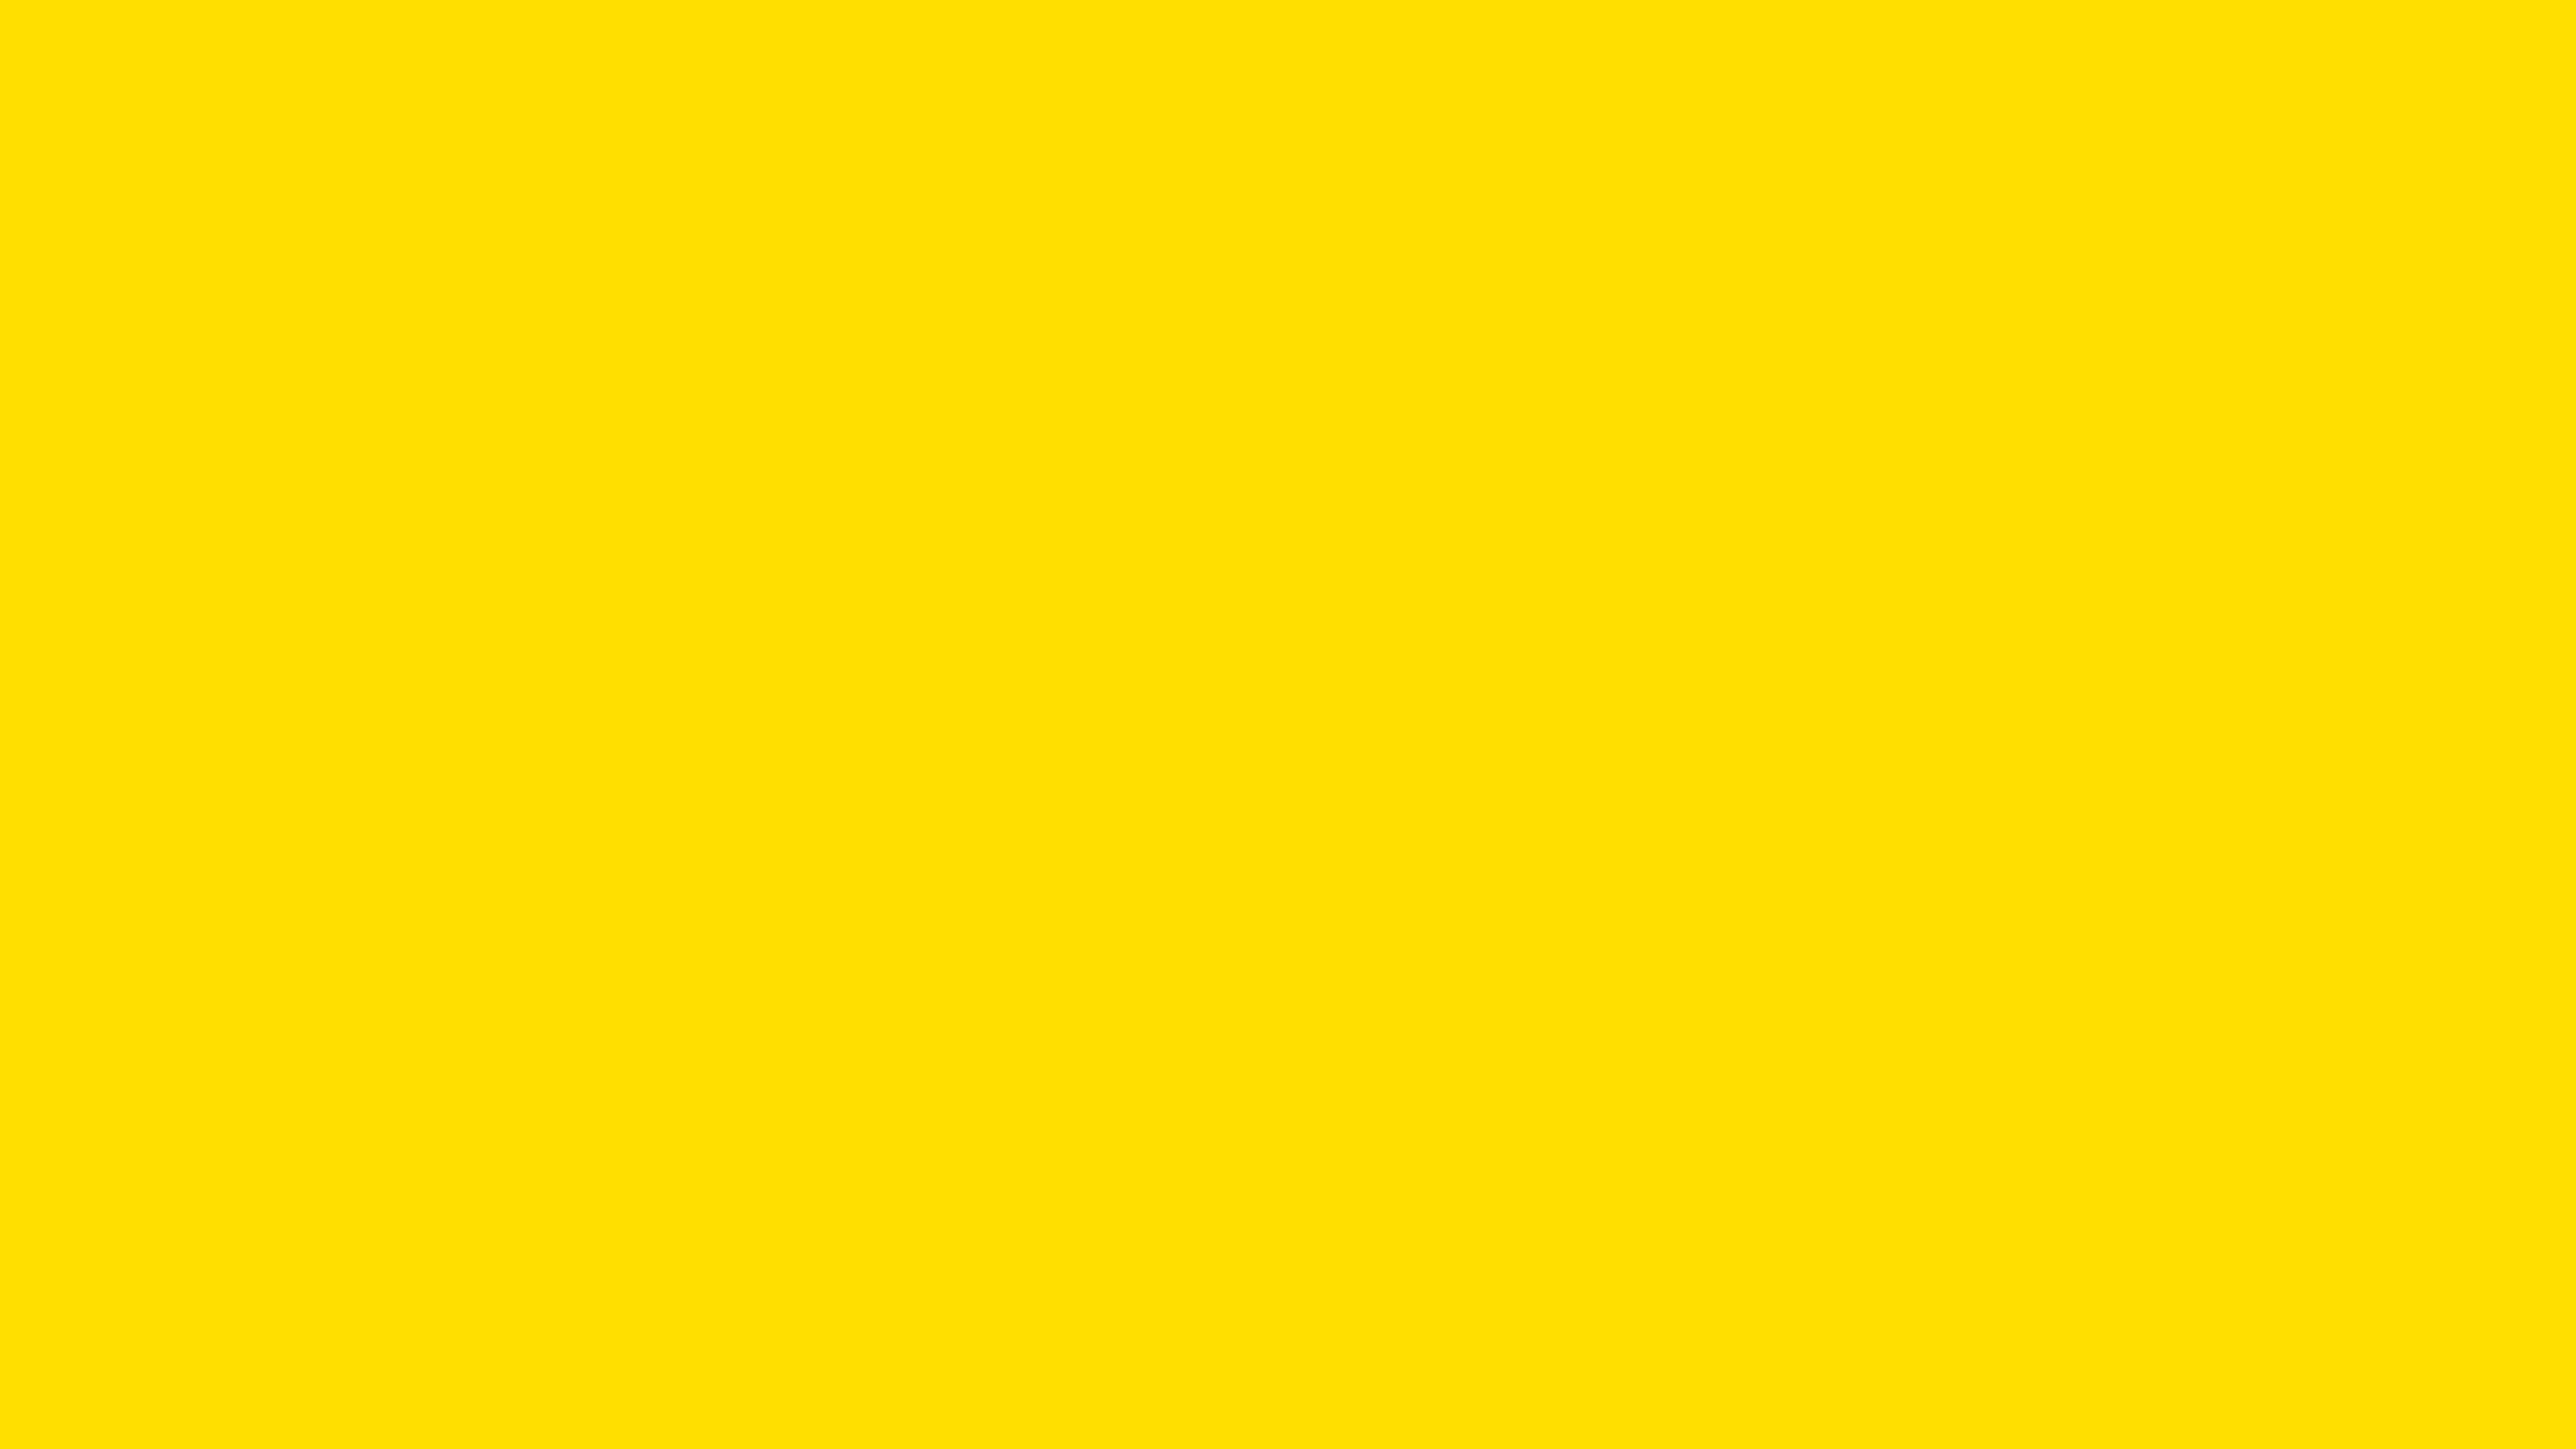 3840x2160 Yellow Pantone Solid Color Background